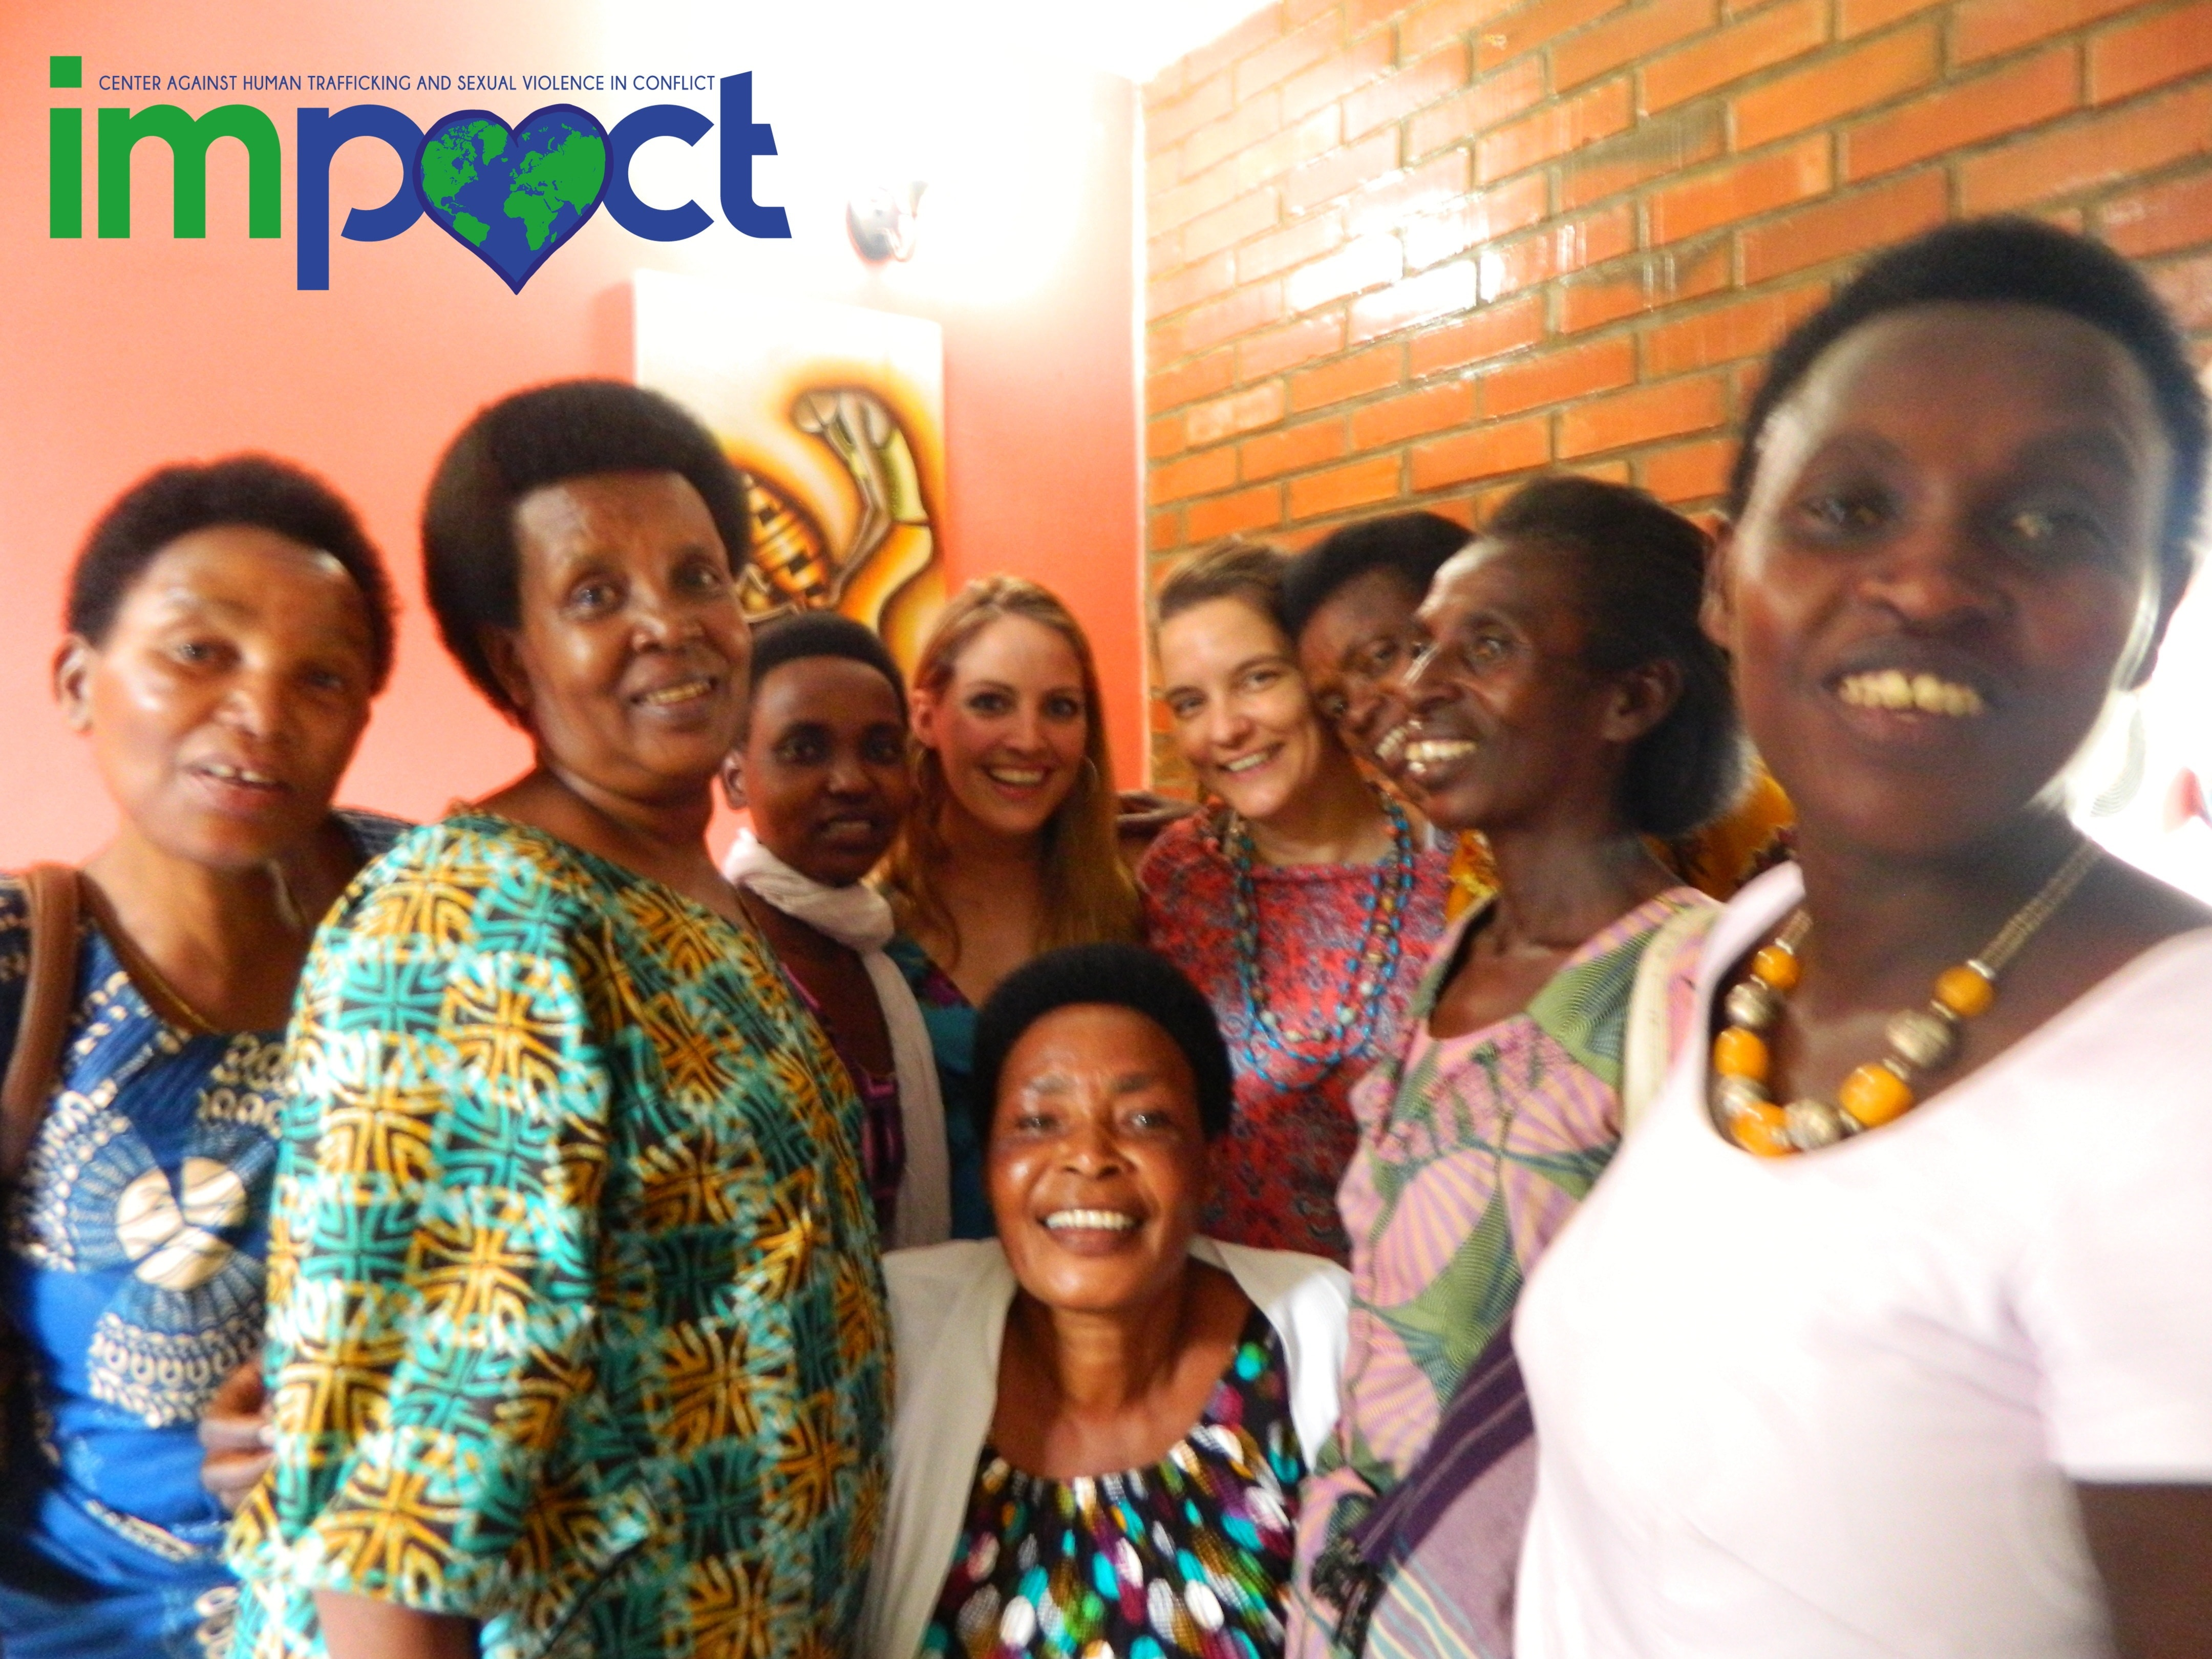 Join IMPACT in Celebrating PEACE on the International Day of Peace